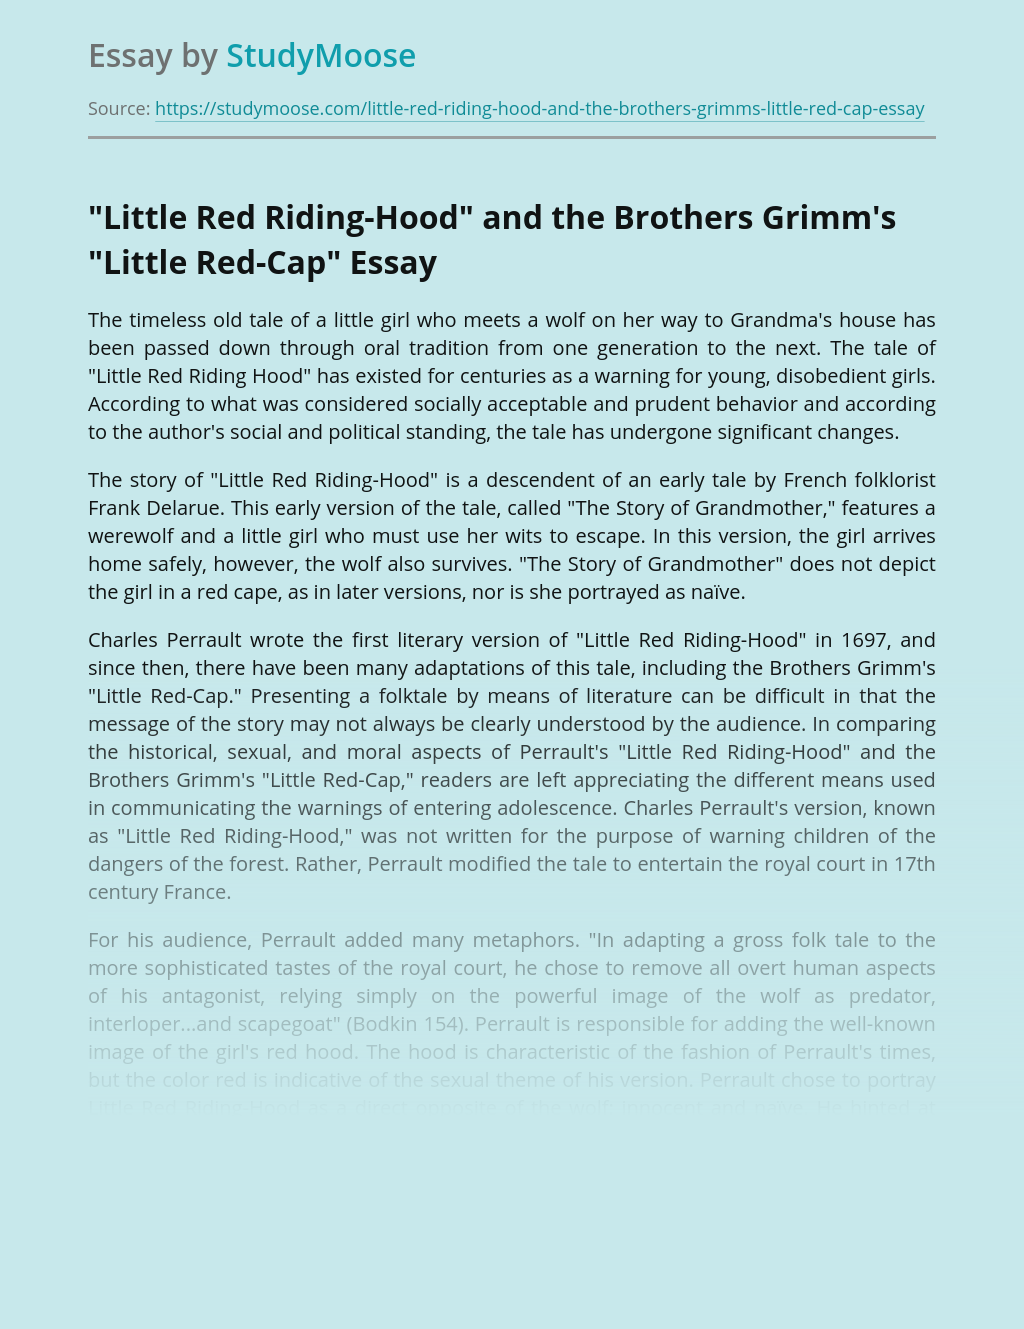 """""""Little Red Riding-Hood"""" and the Brothers Grimm's """"Little Red-Cap"""""""